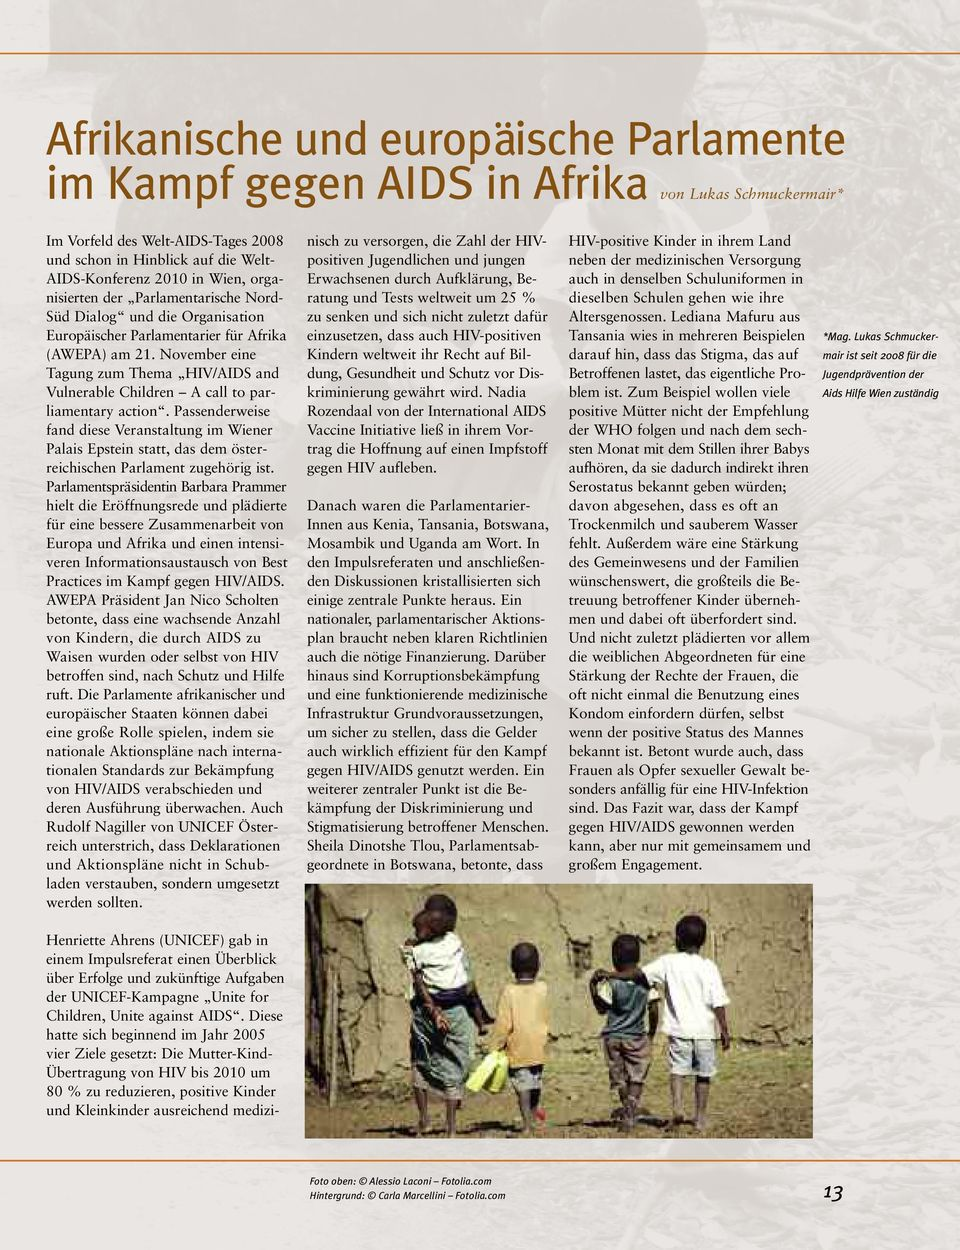 November eine Tagung zum Thema HIV/AIDS and Vulnerable Children A call to parliamentary action.